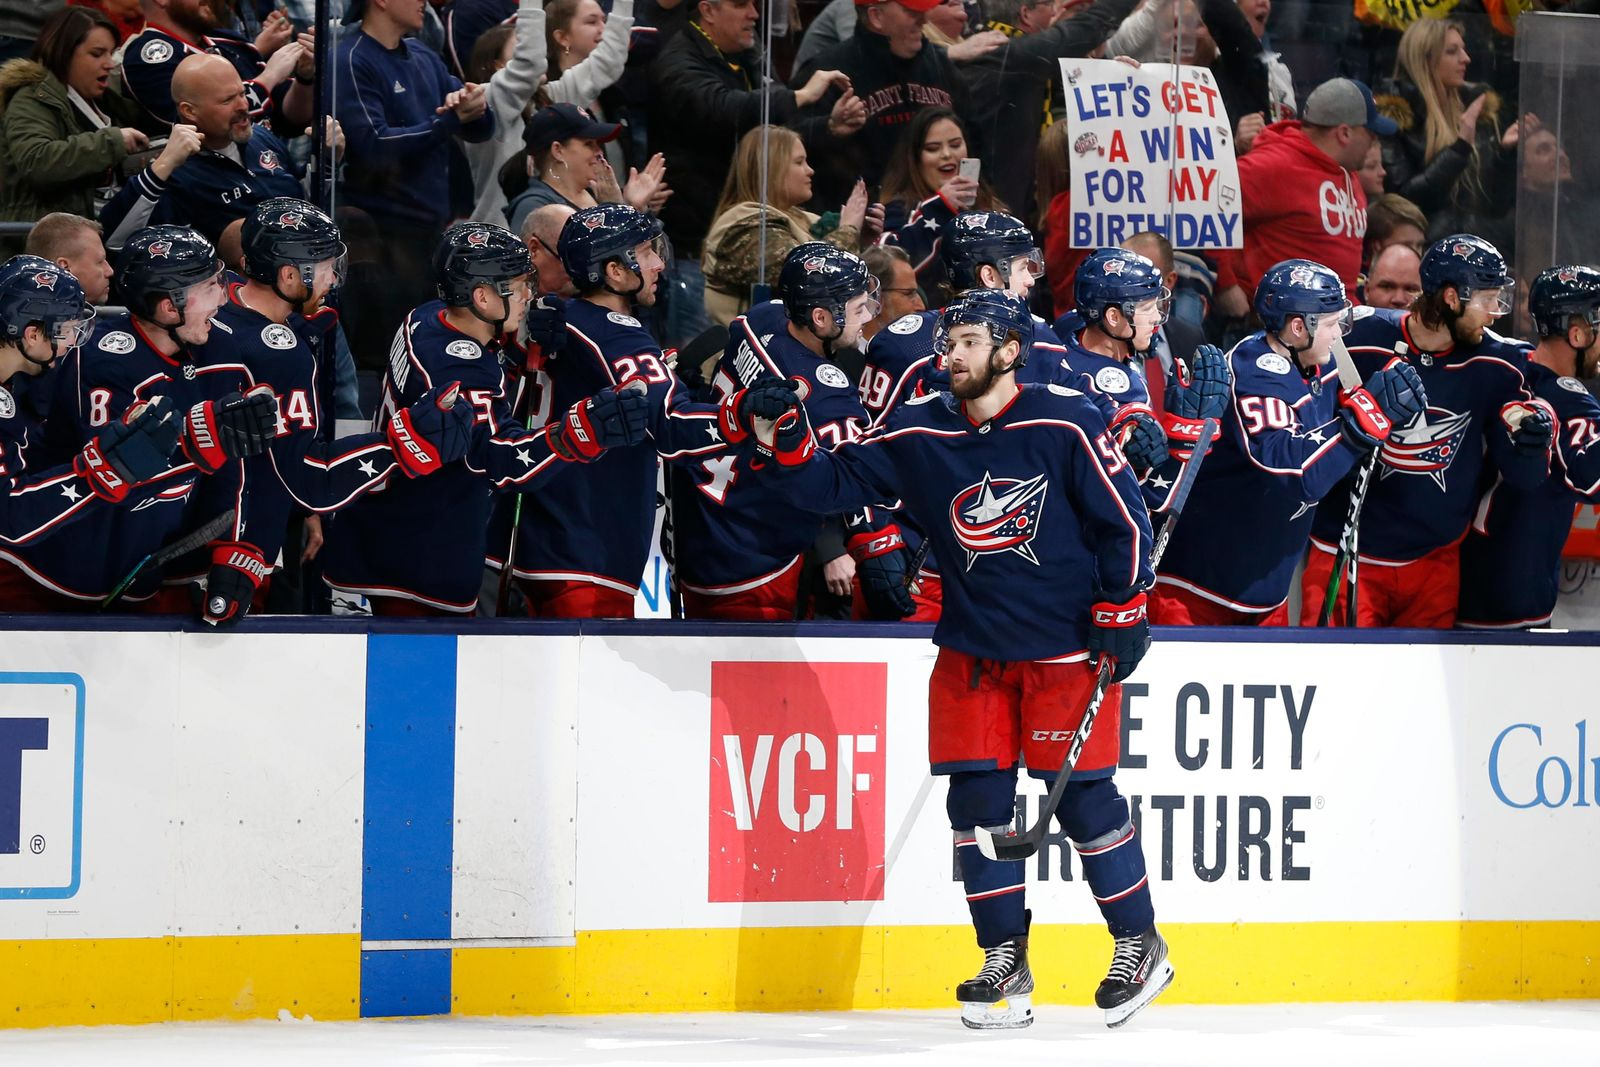 Columbus Blue Jackets' Emil Bemstrom, of Sweden, celebrates his goal against the Vancouver Canucks during the third period of an NHL hockey game Sunday, March 1, 2020, in Columbus, Ohio. The Blue Jackets defeated the Canucks 5-3. (AP Photo/Jay LaPrete)